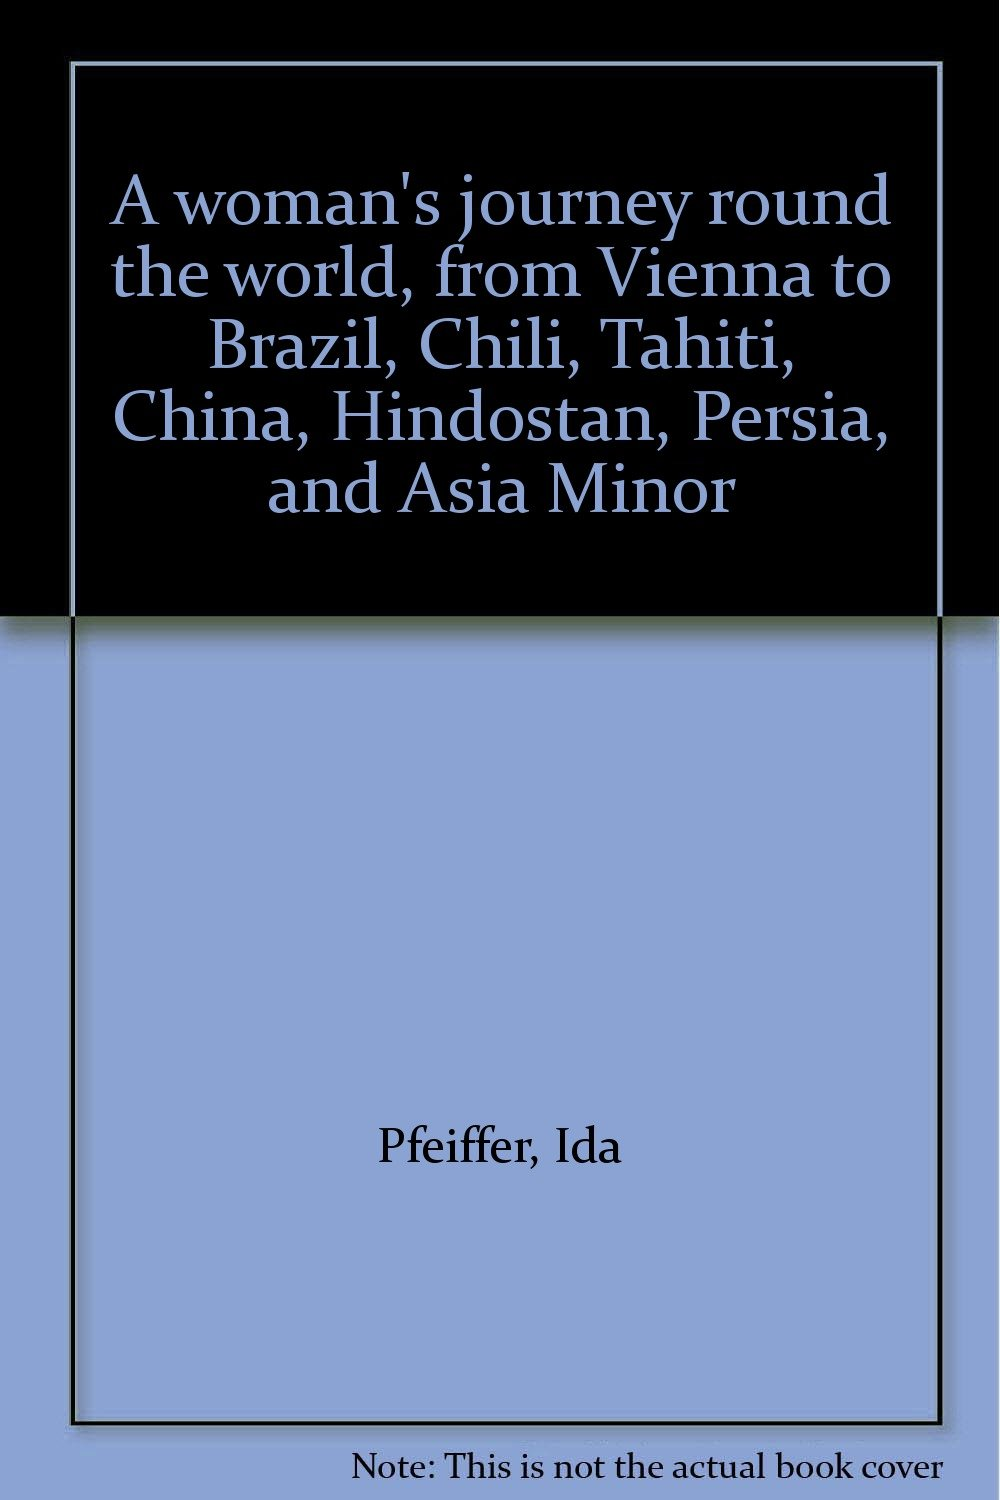 Persia Chili China and Asia Minor Tahiti Hindostan A Womans Journey Round the World: From Vienna to Brazil